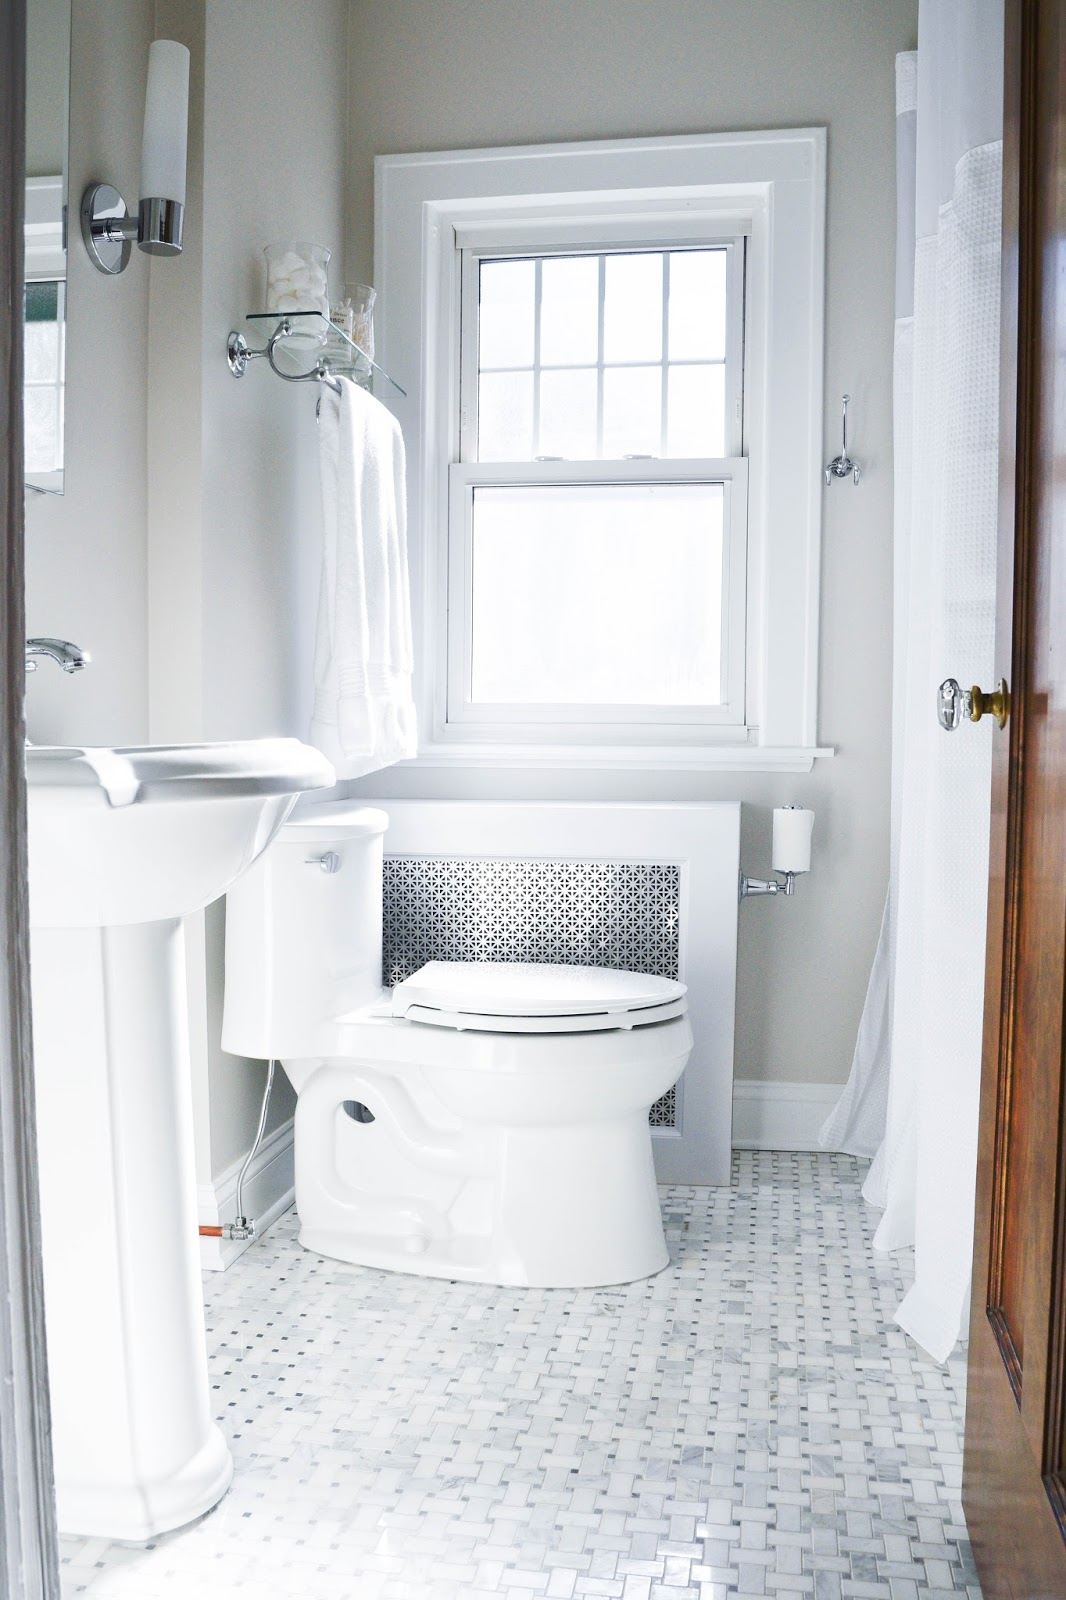 Perfect Kohler Verdera Mirror Cabinet Kohler Adhair One Piece Toilet Carrara Marble Basketweave Floor Tiles Gray Subway Tiles Kohler Devonshire Sink